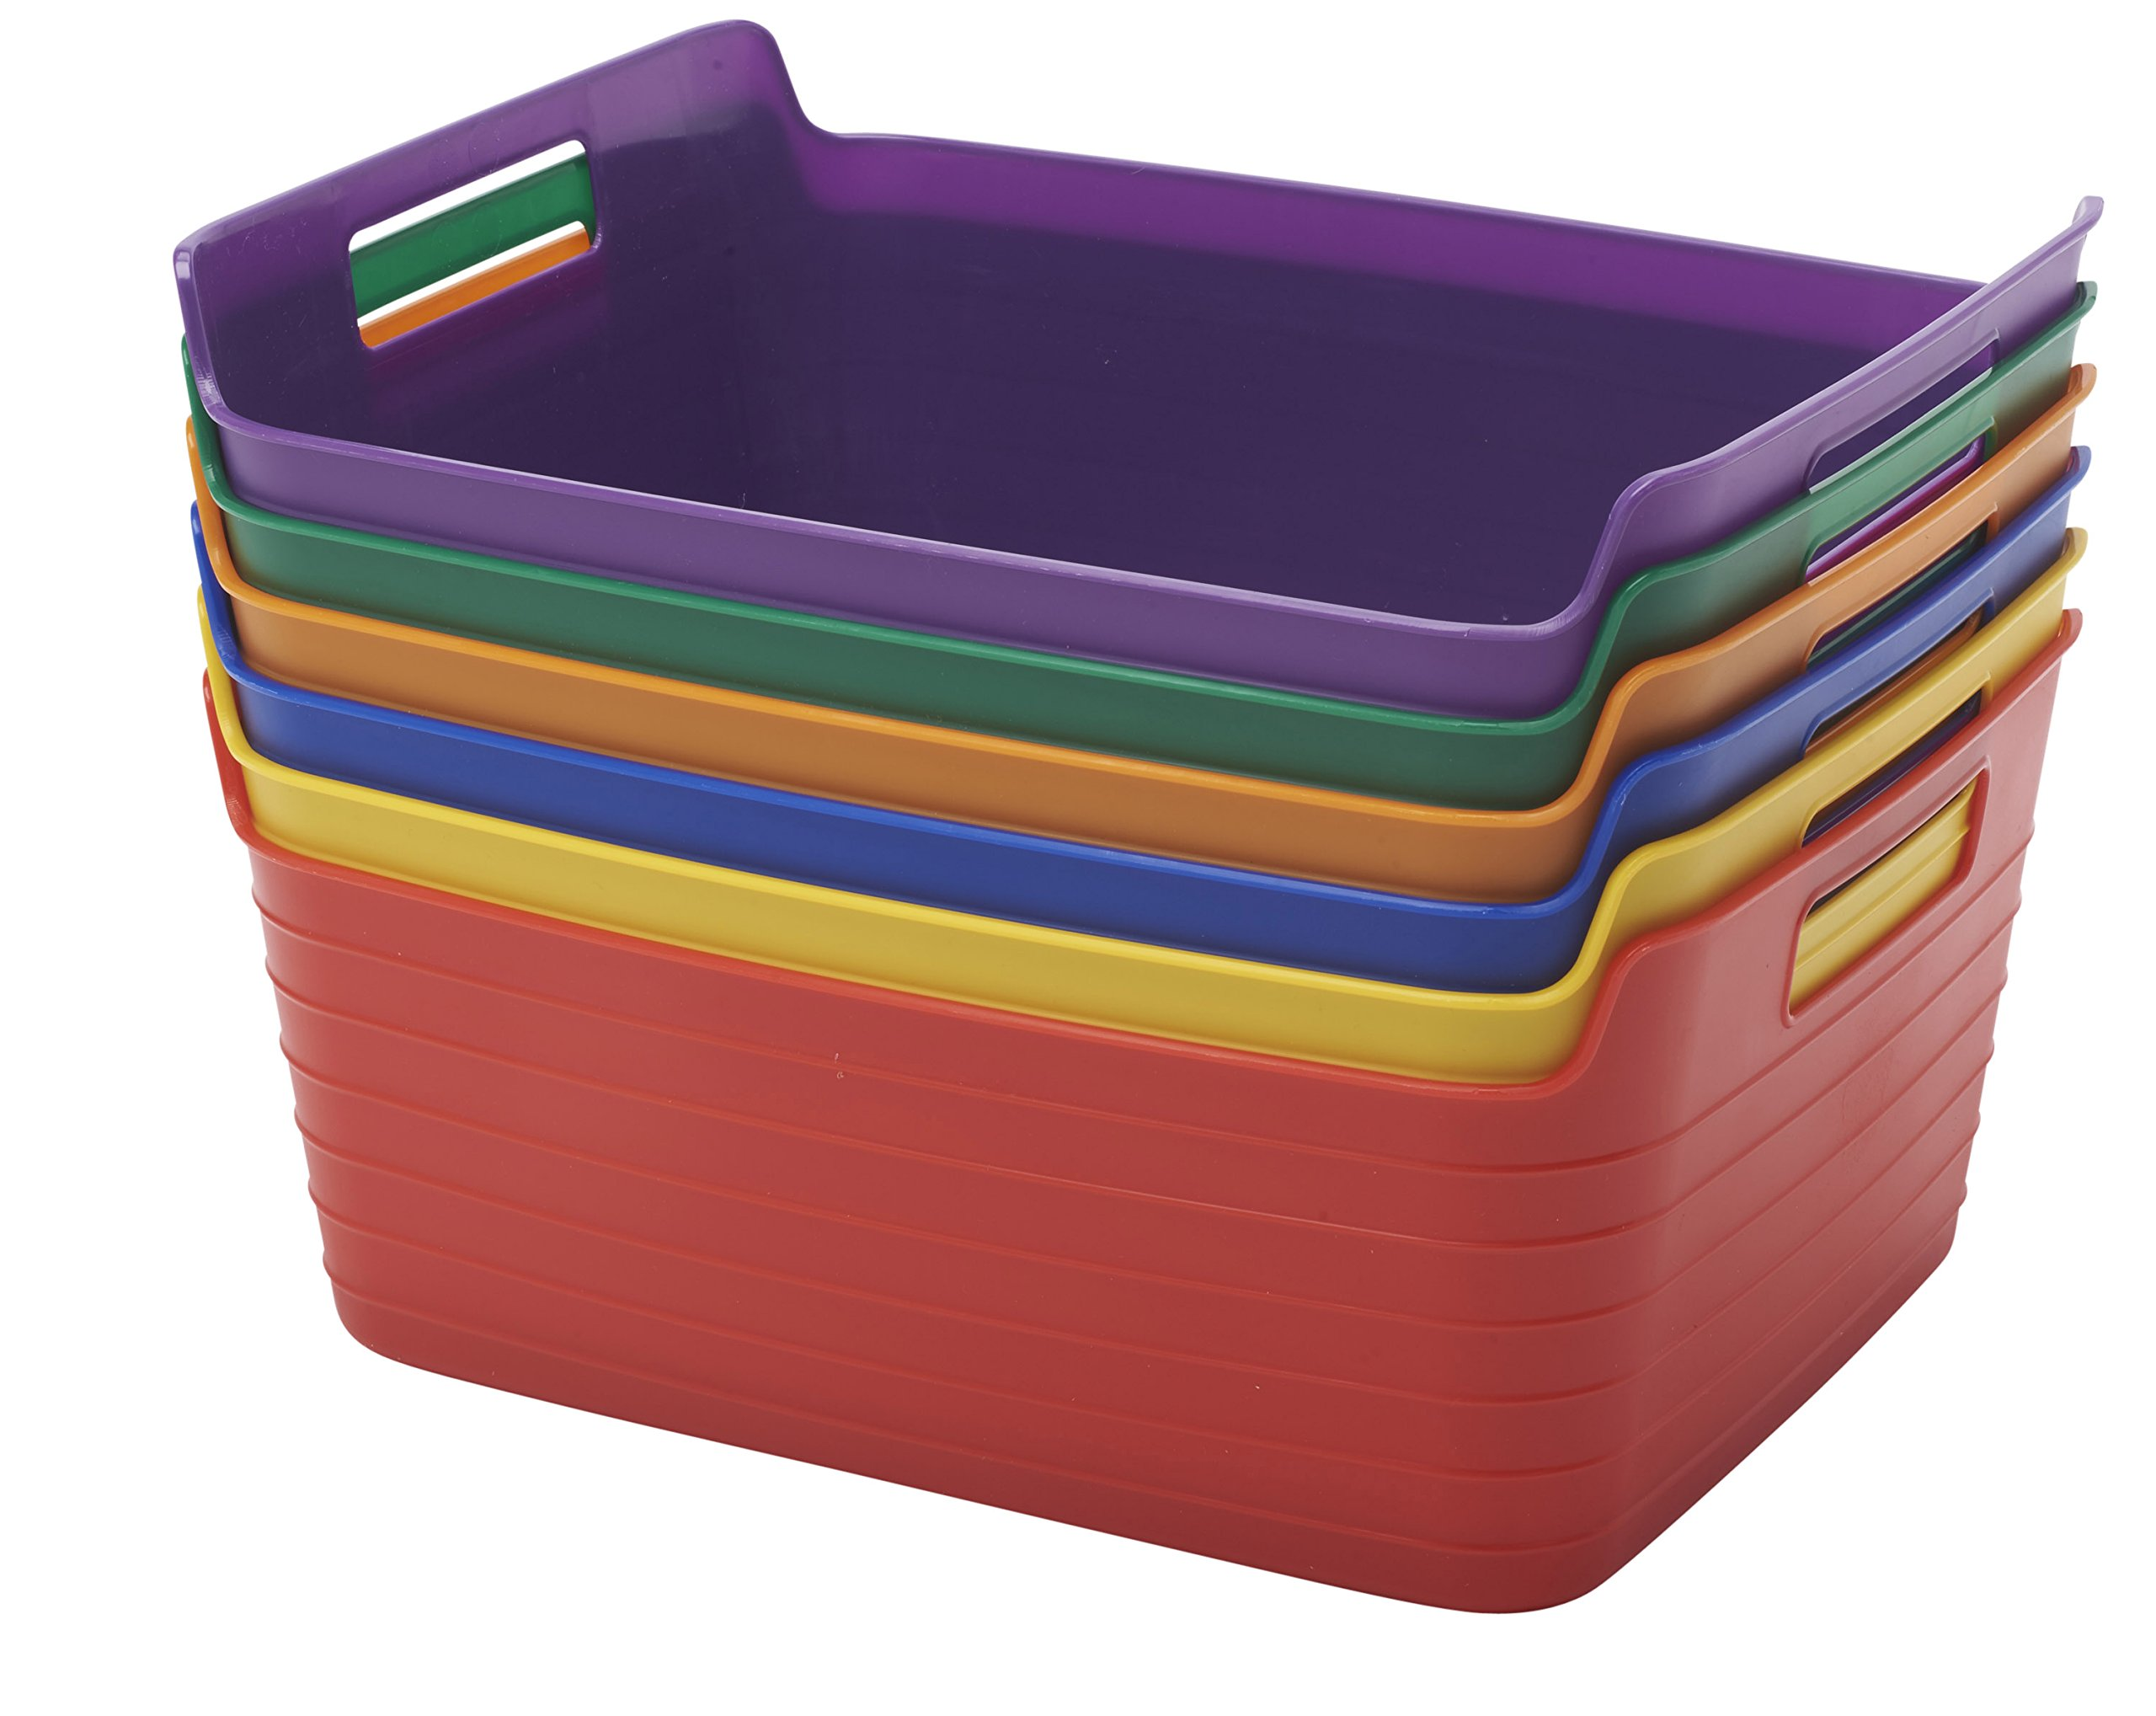 ECR4Kids Assorted Large Bendi-Bins with Handles,Stackable Plastic Storage Bins for Toys and More, Assorted Colors (6-Pack)